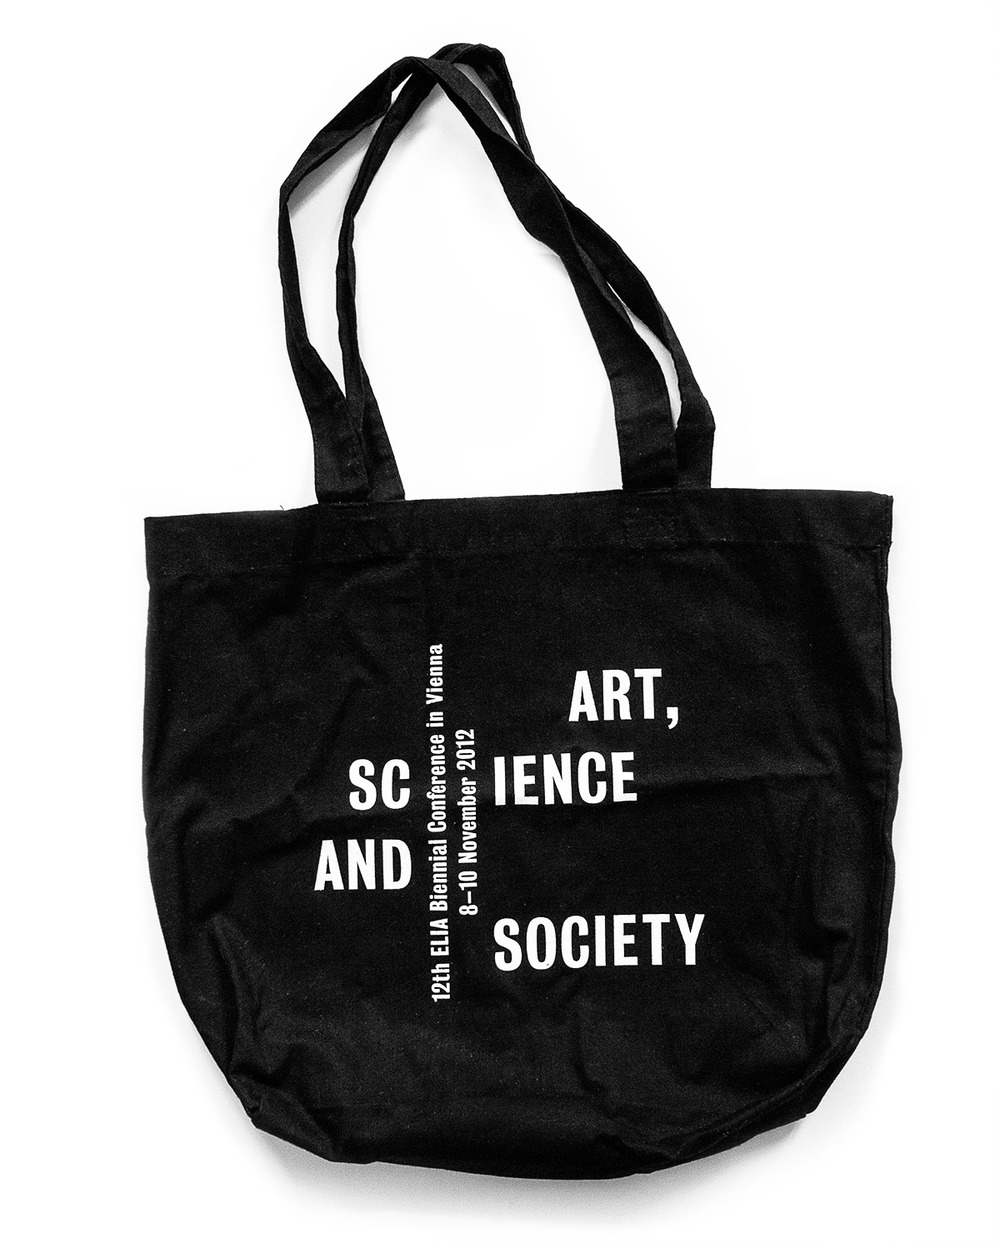 Conference Bag, Silscreen print on organic cotton